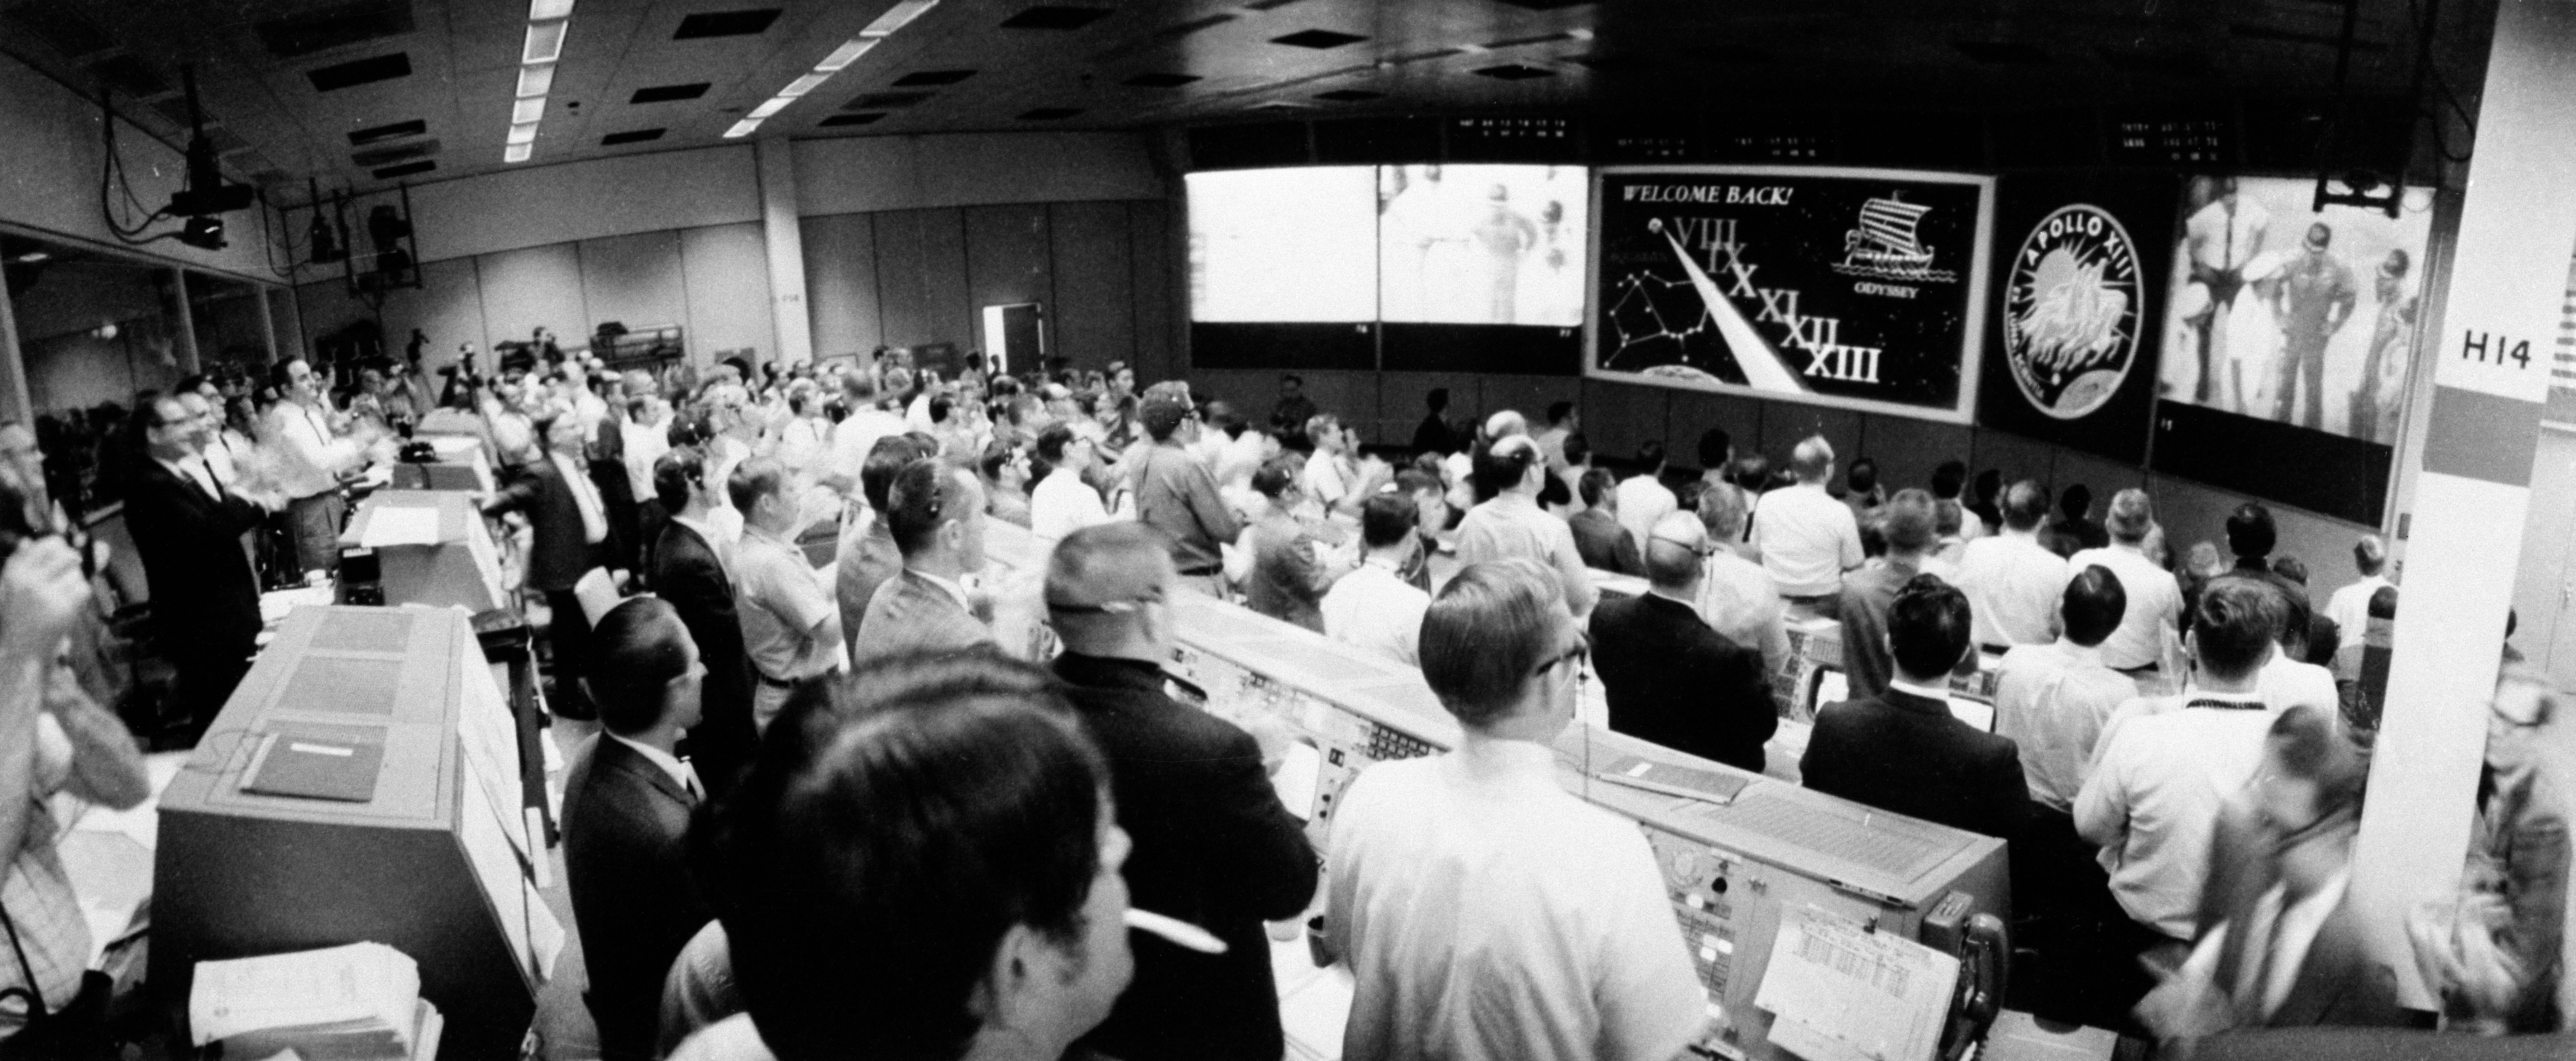 enduring leadership lessons of apollo technology delivery mission control celebrates the recovery of the apollo 13 crew